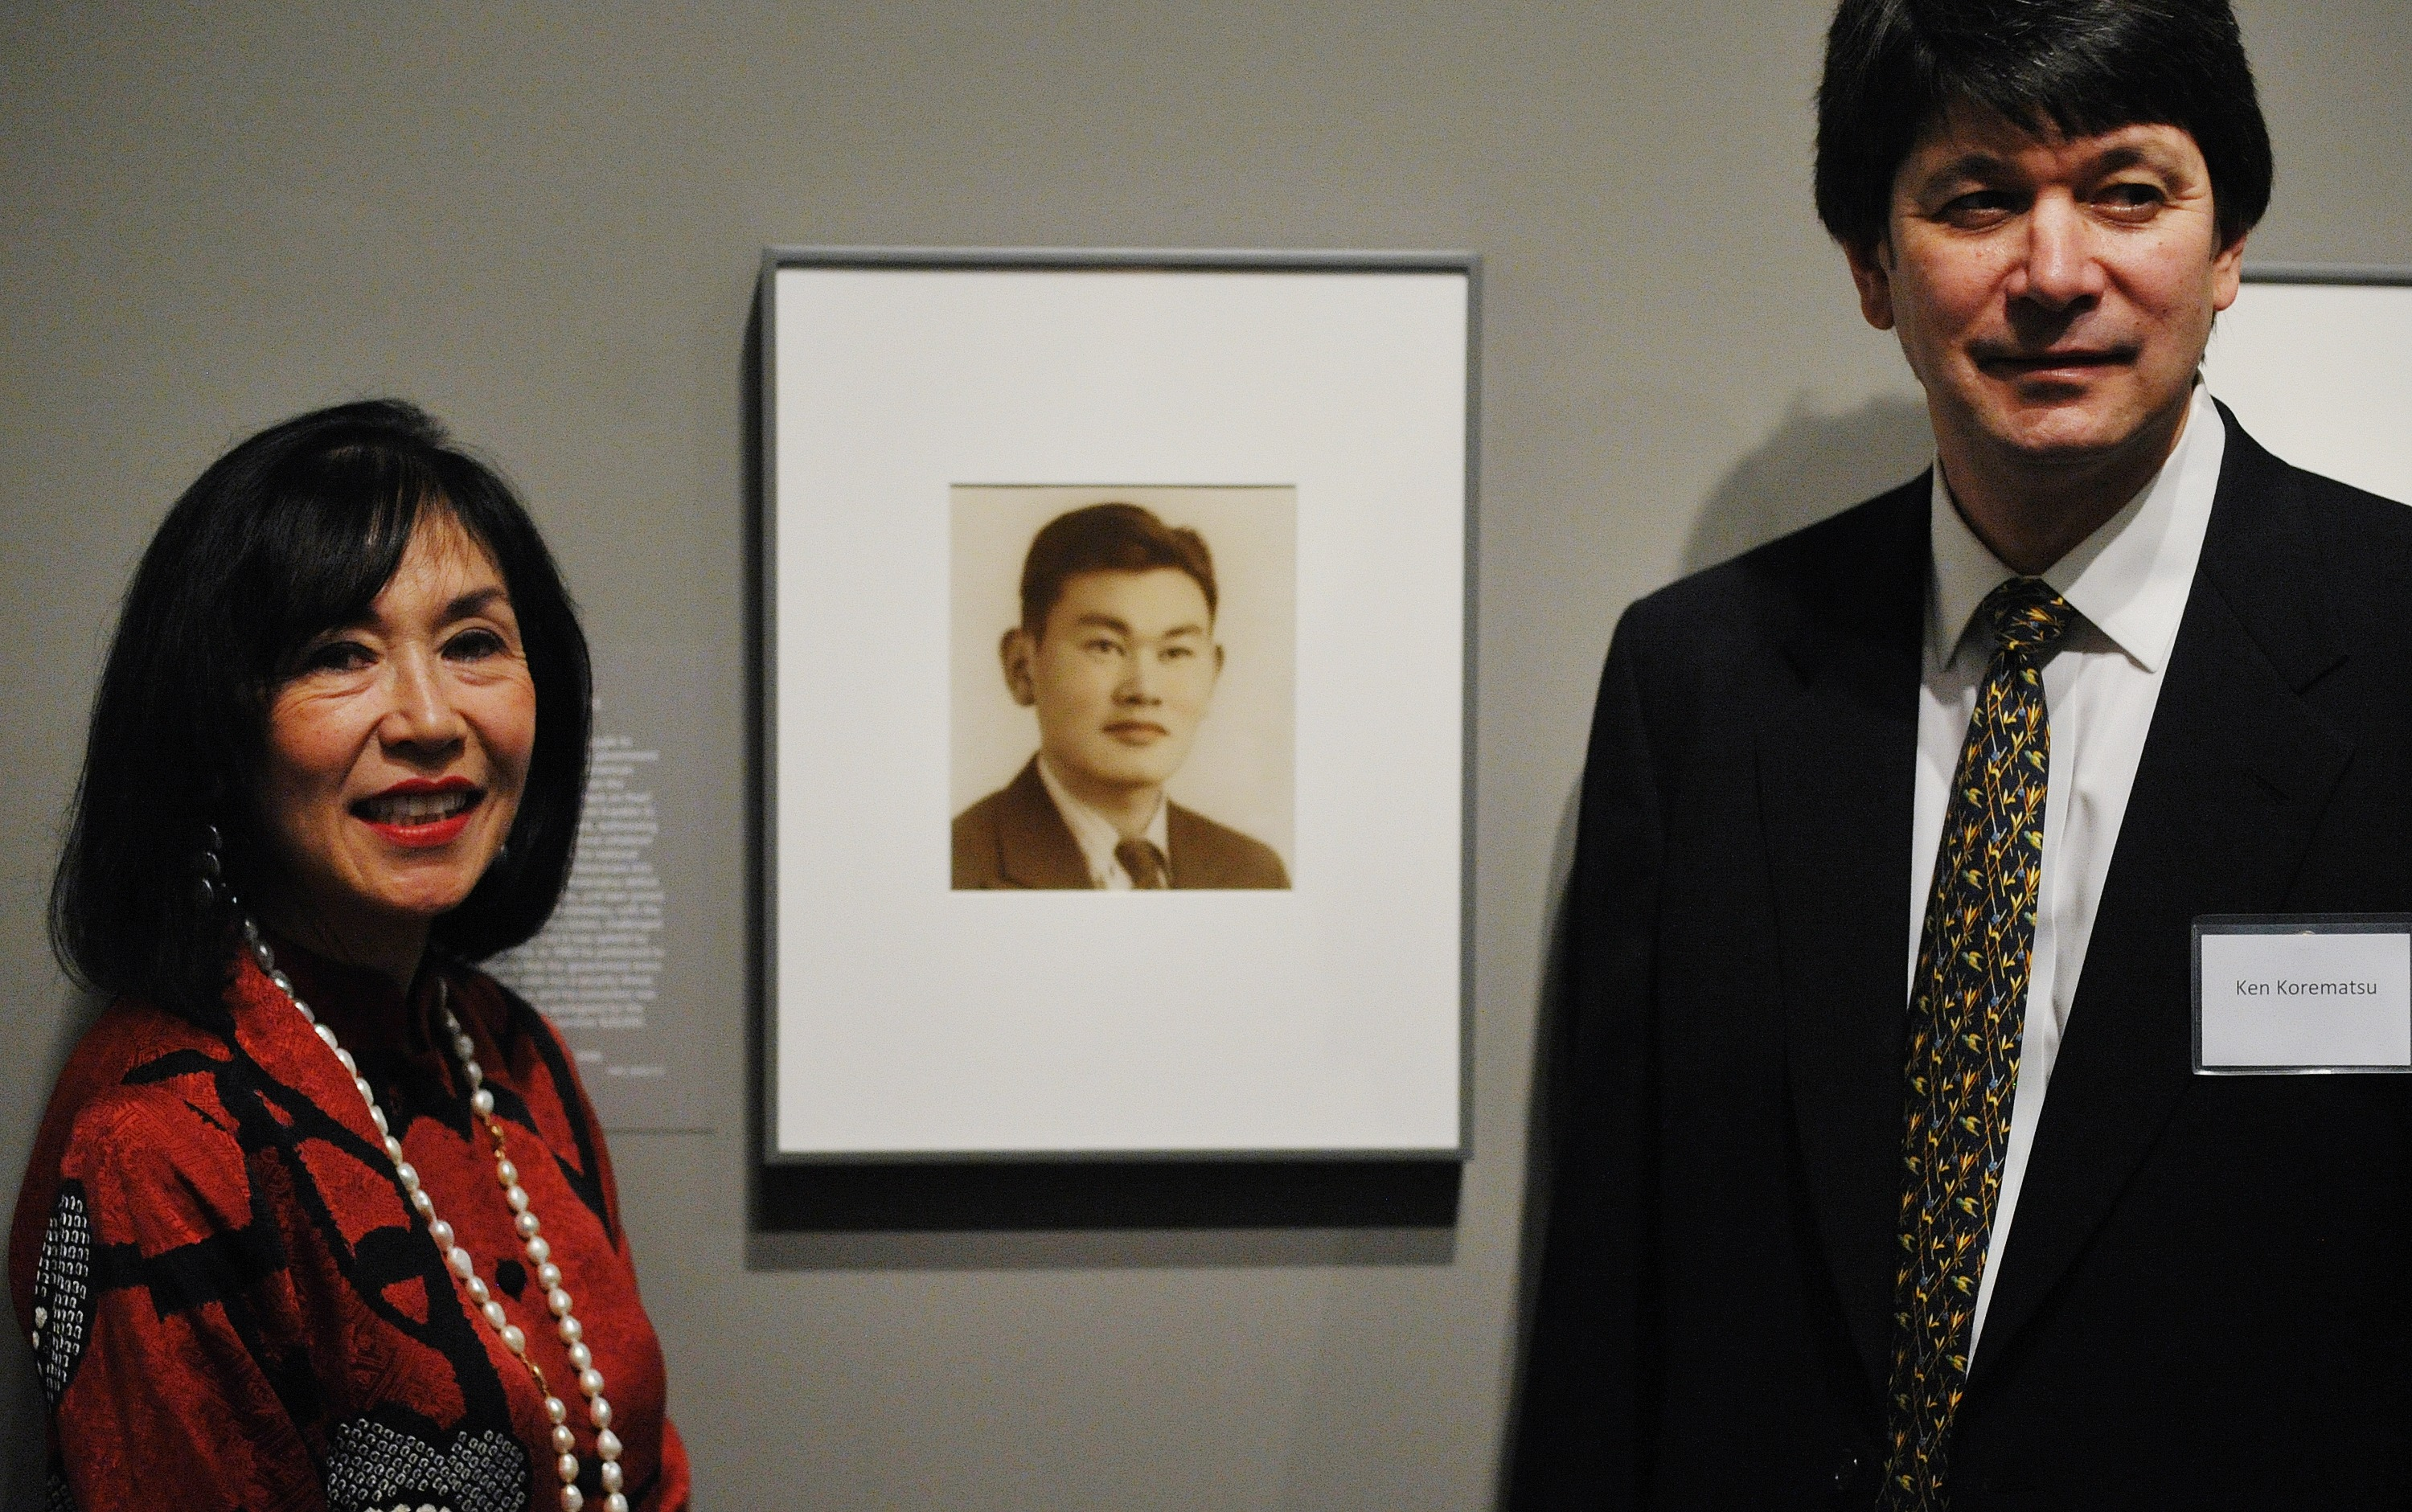 Karen and Ken Korematsu pose near photographs of their father Fred Korematsu during a presentation of his portrait to the National Portrait Gallery on February 2, 2012 in Washington, DC. (Getty)